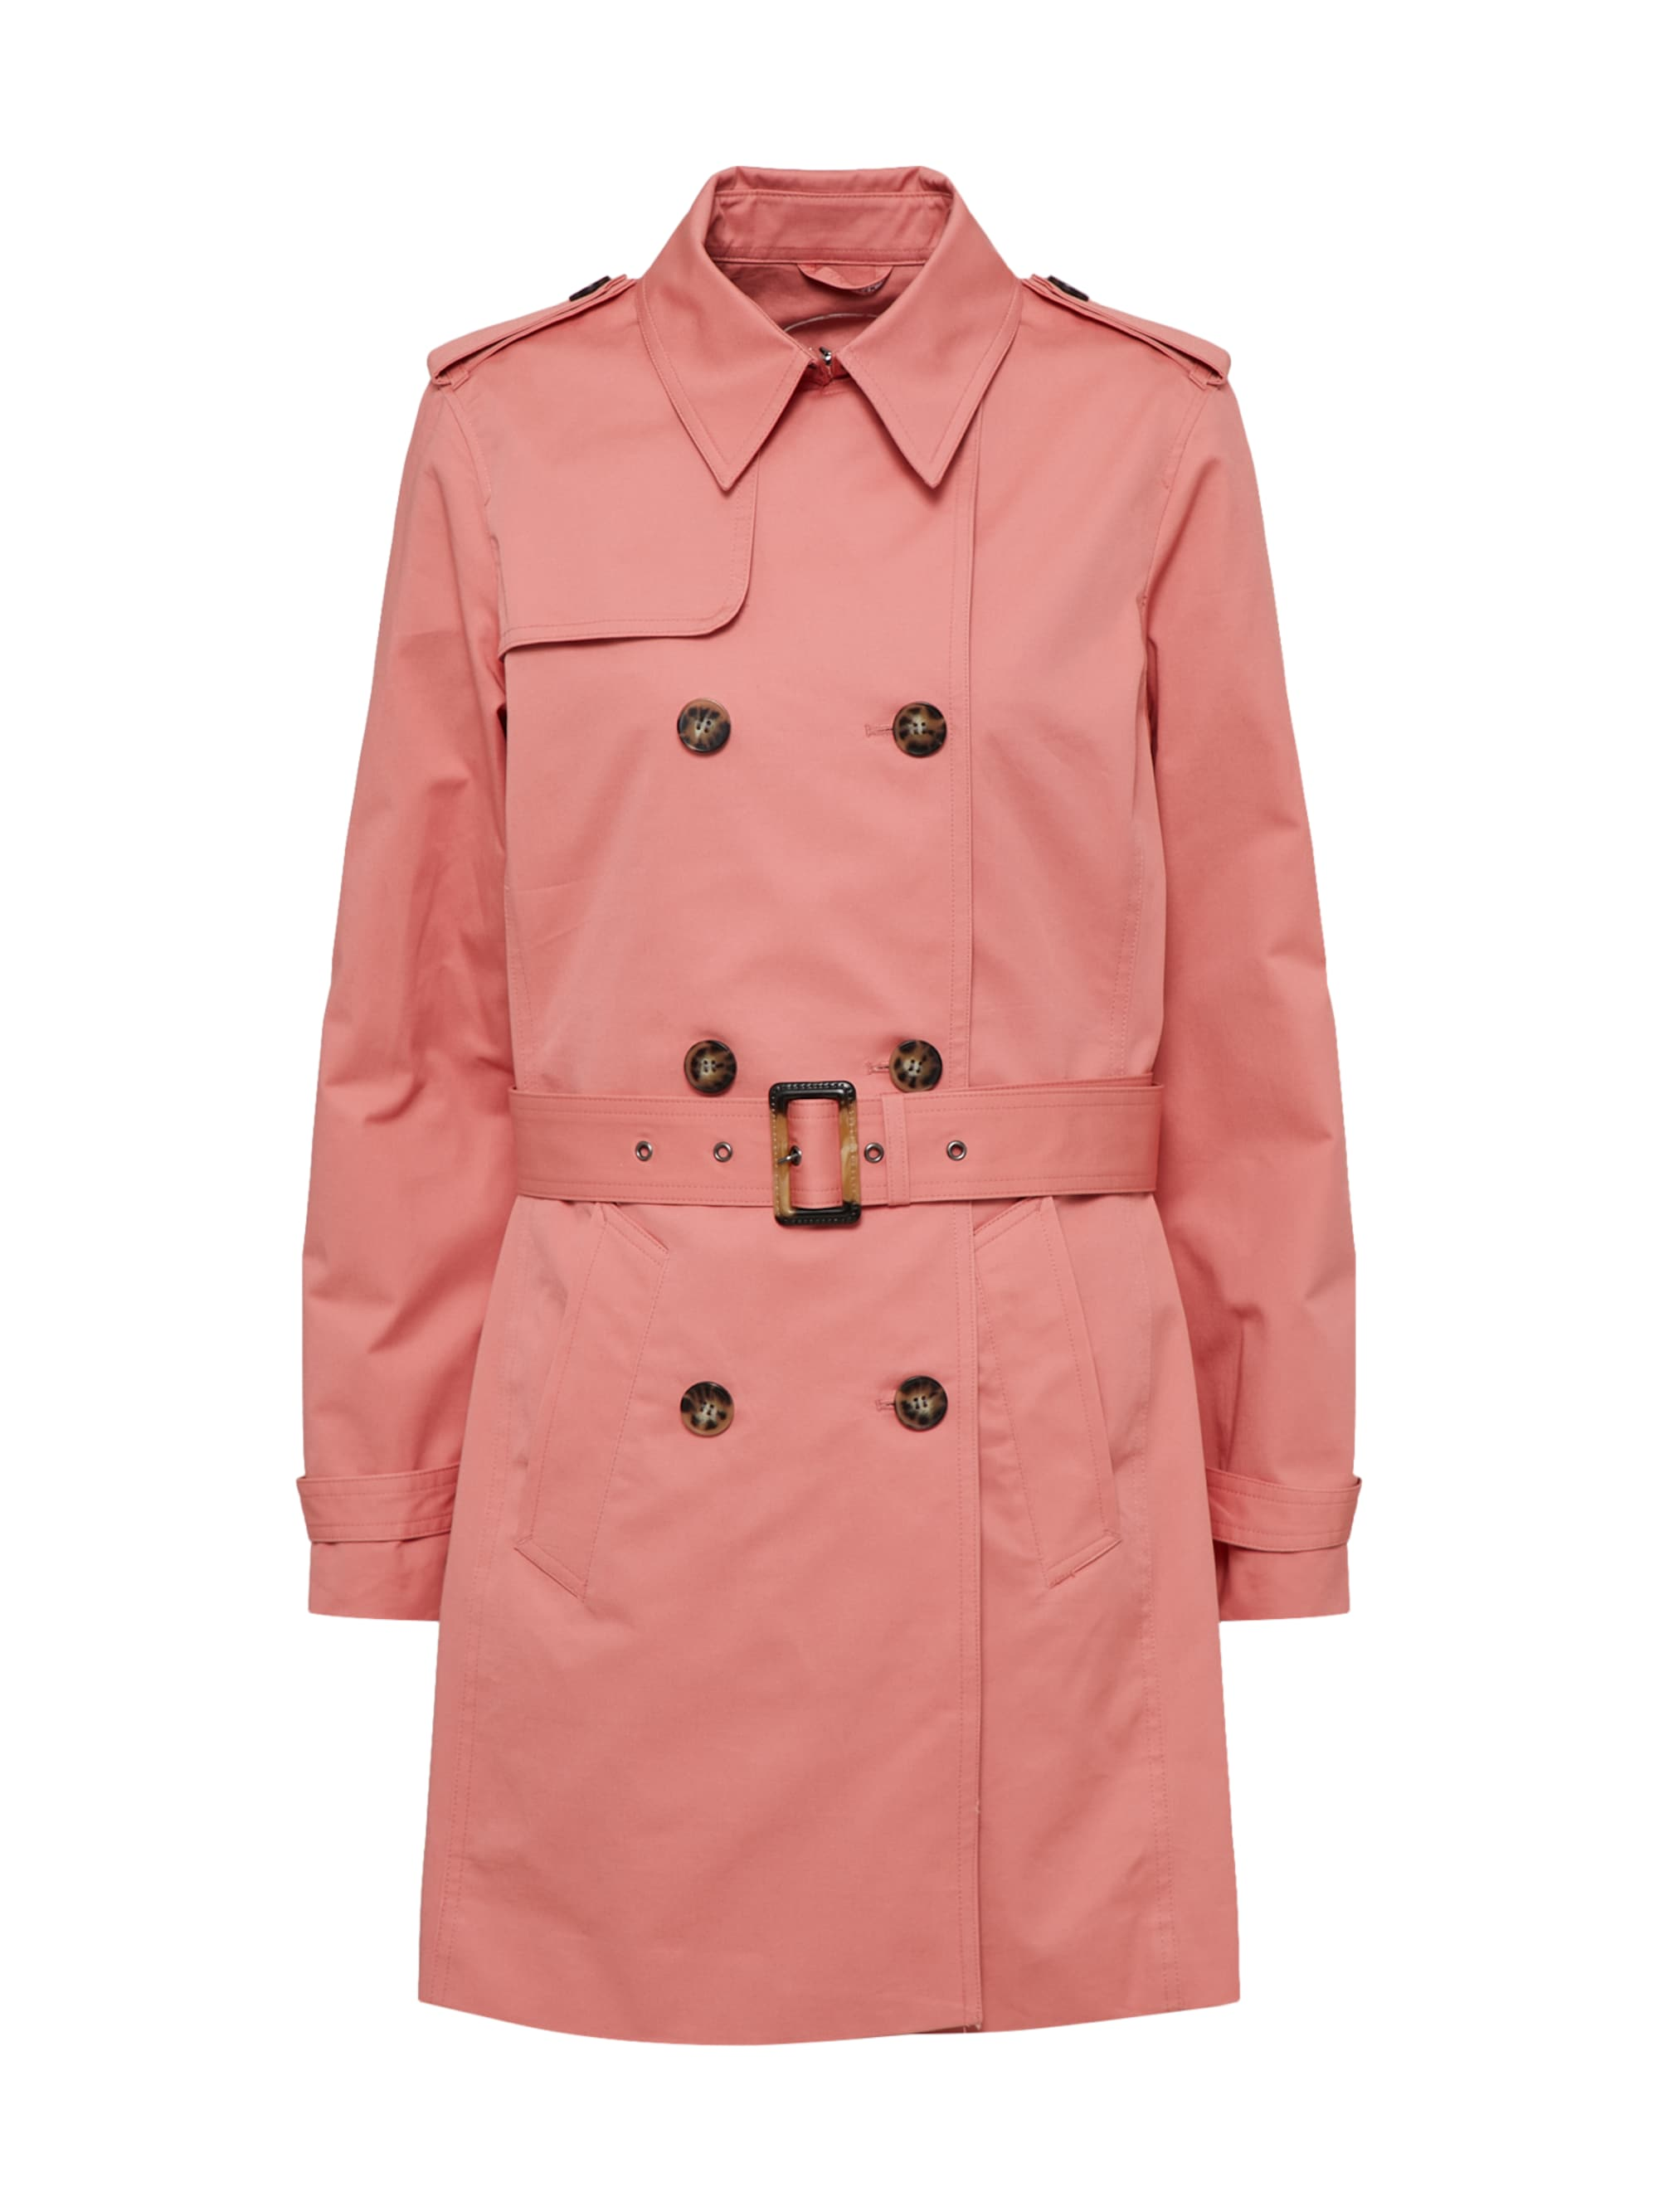 s.oliver red label - Trenchcoat